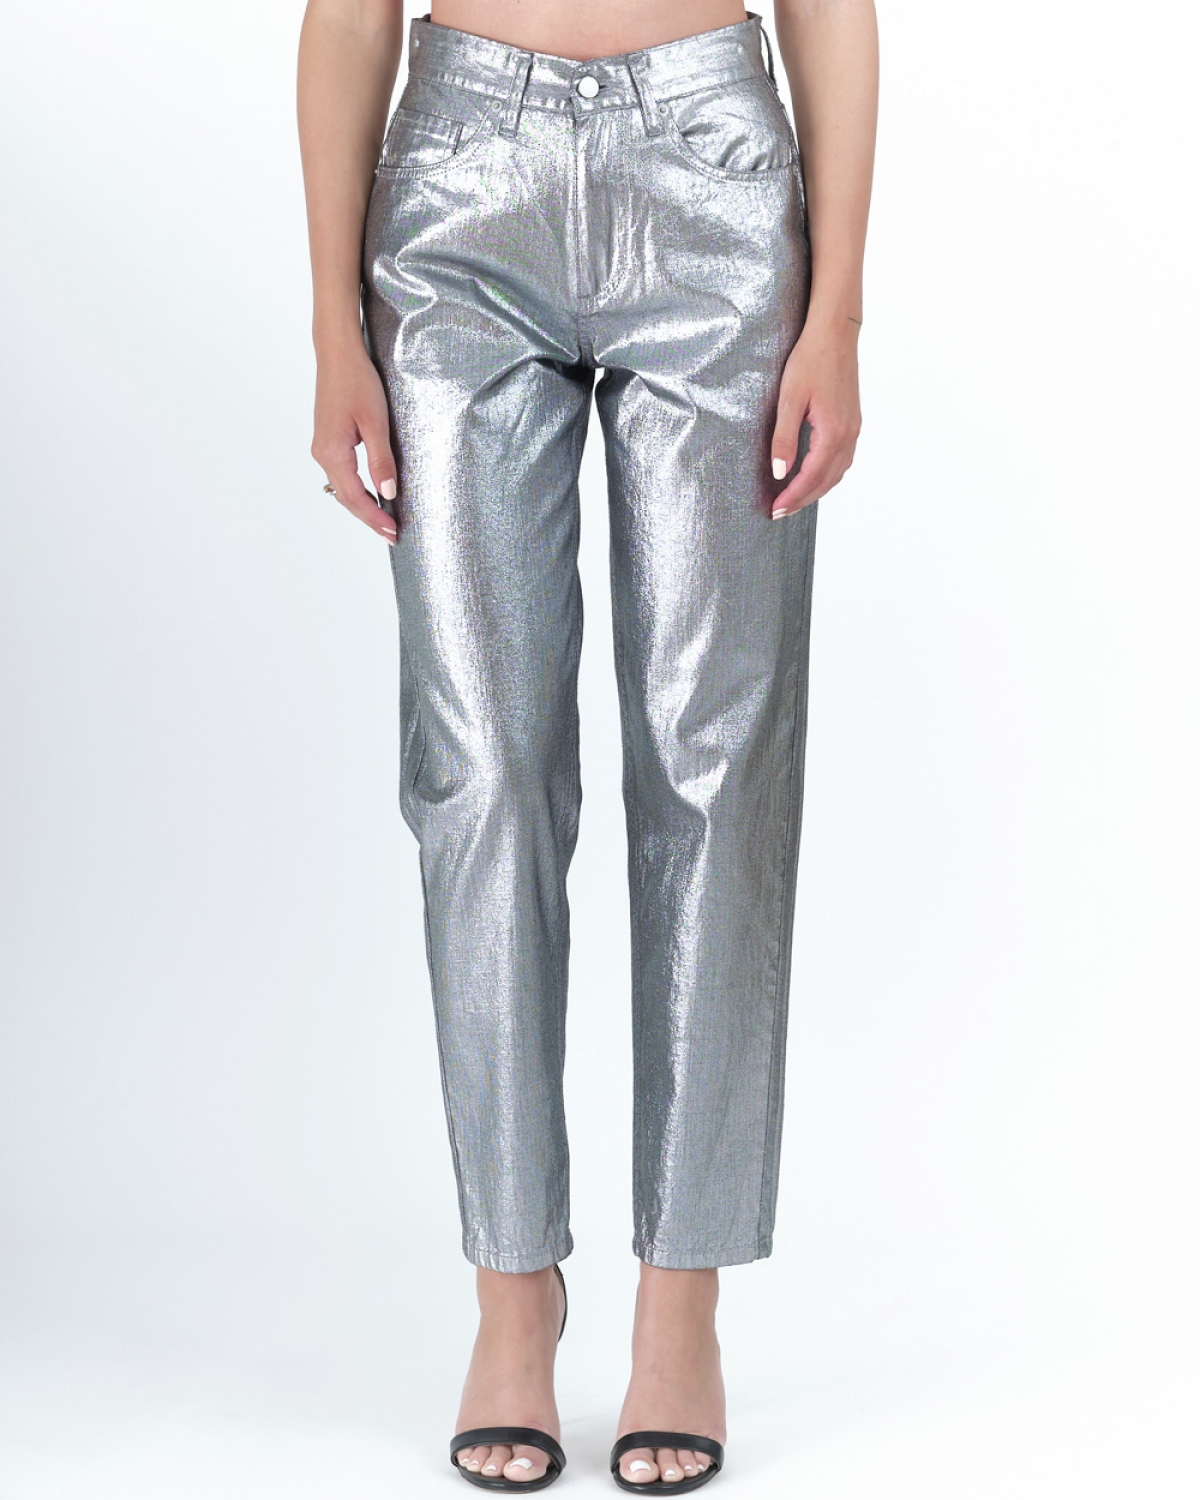 Barbara Disco Ball Jeans